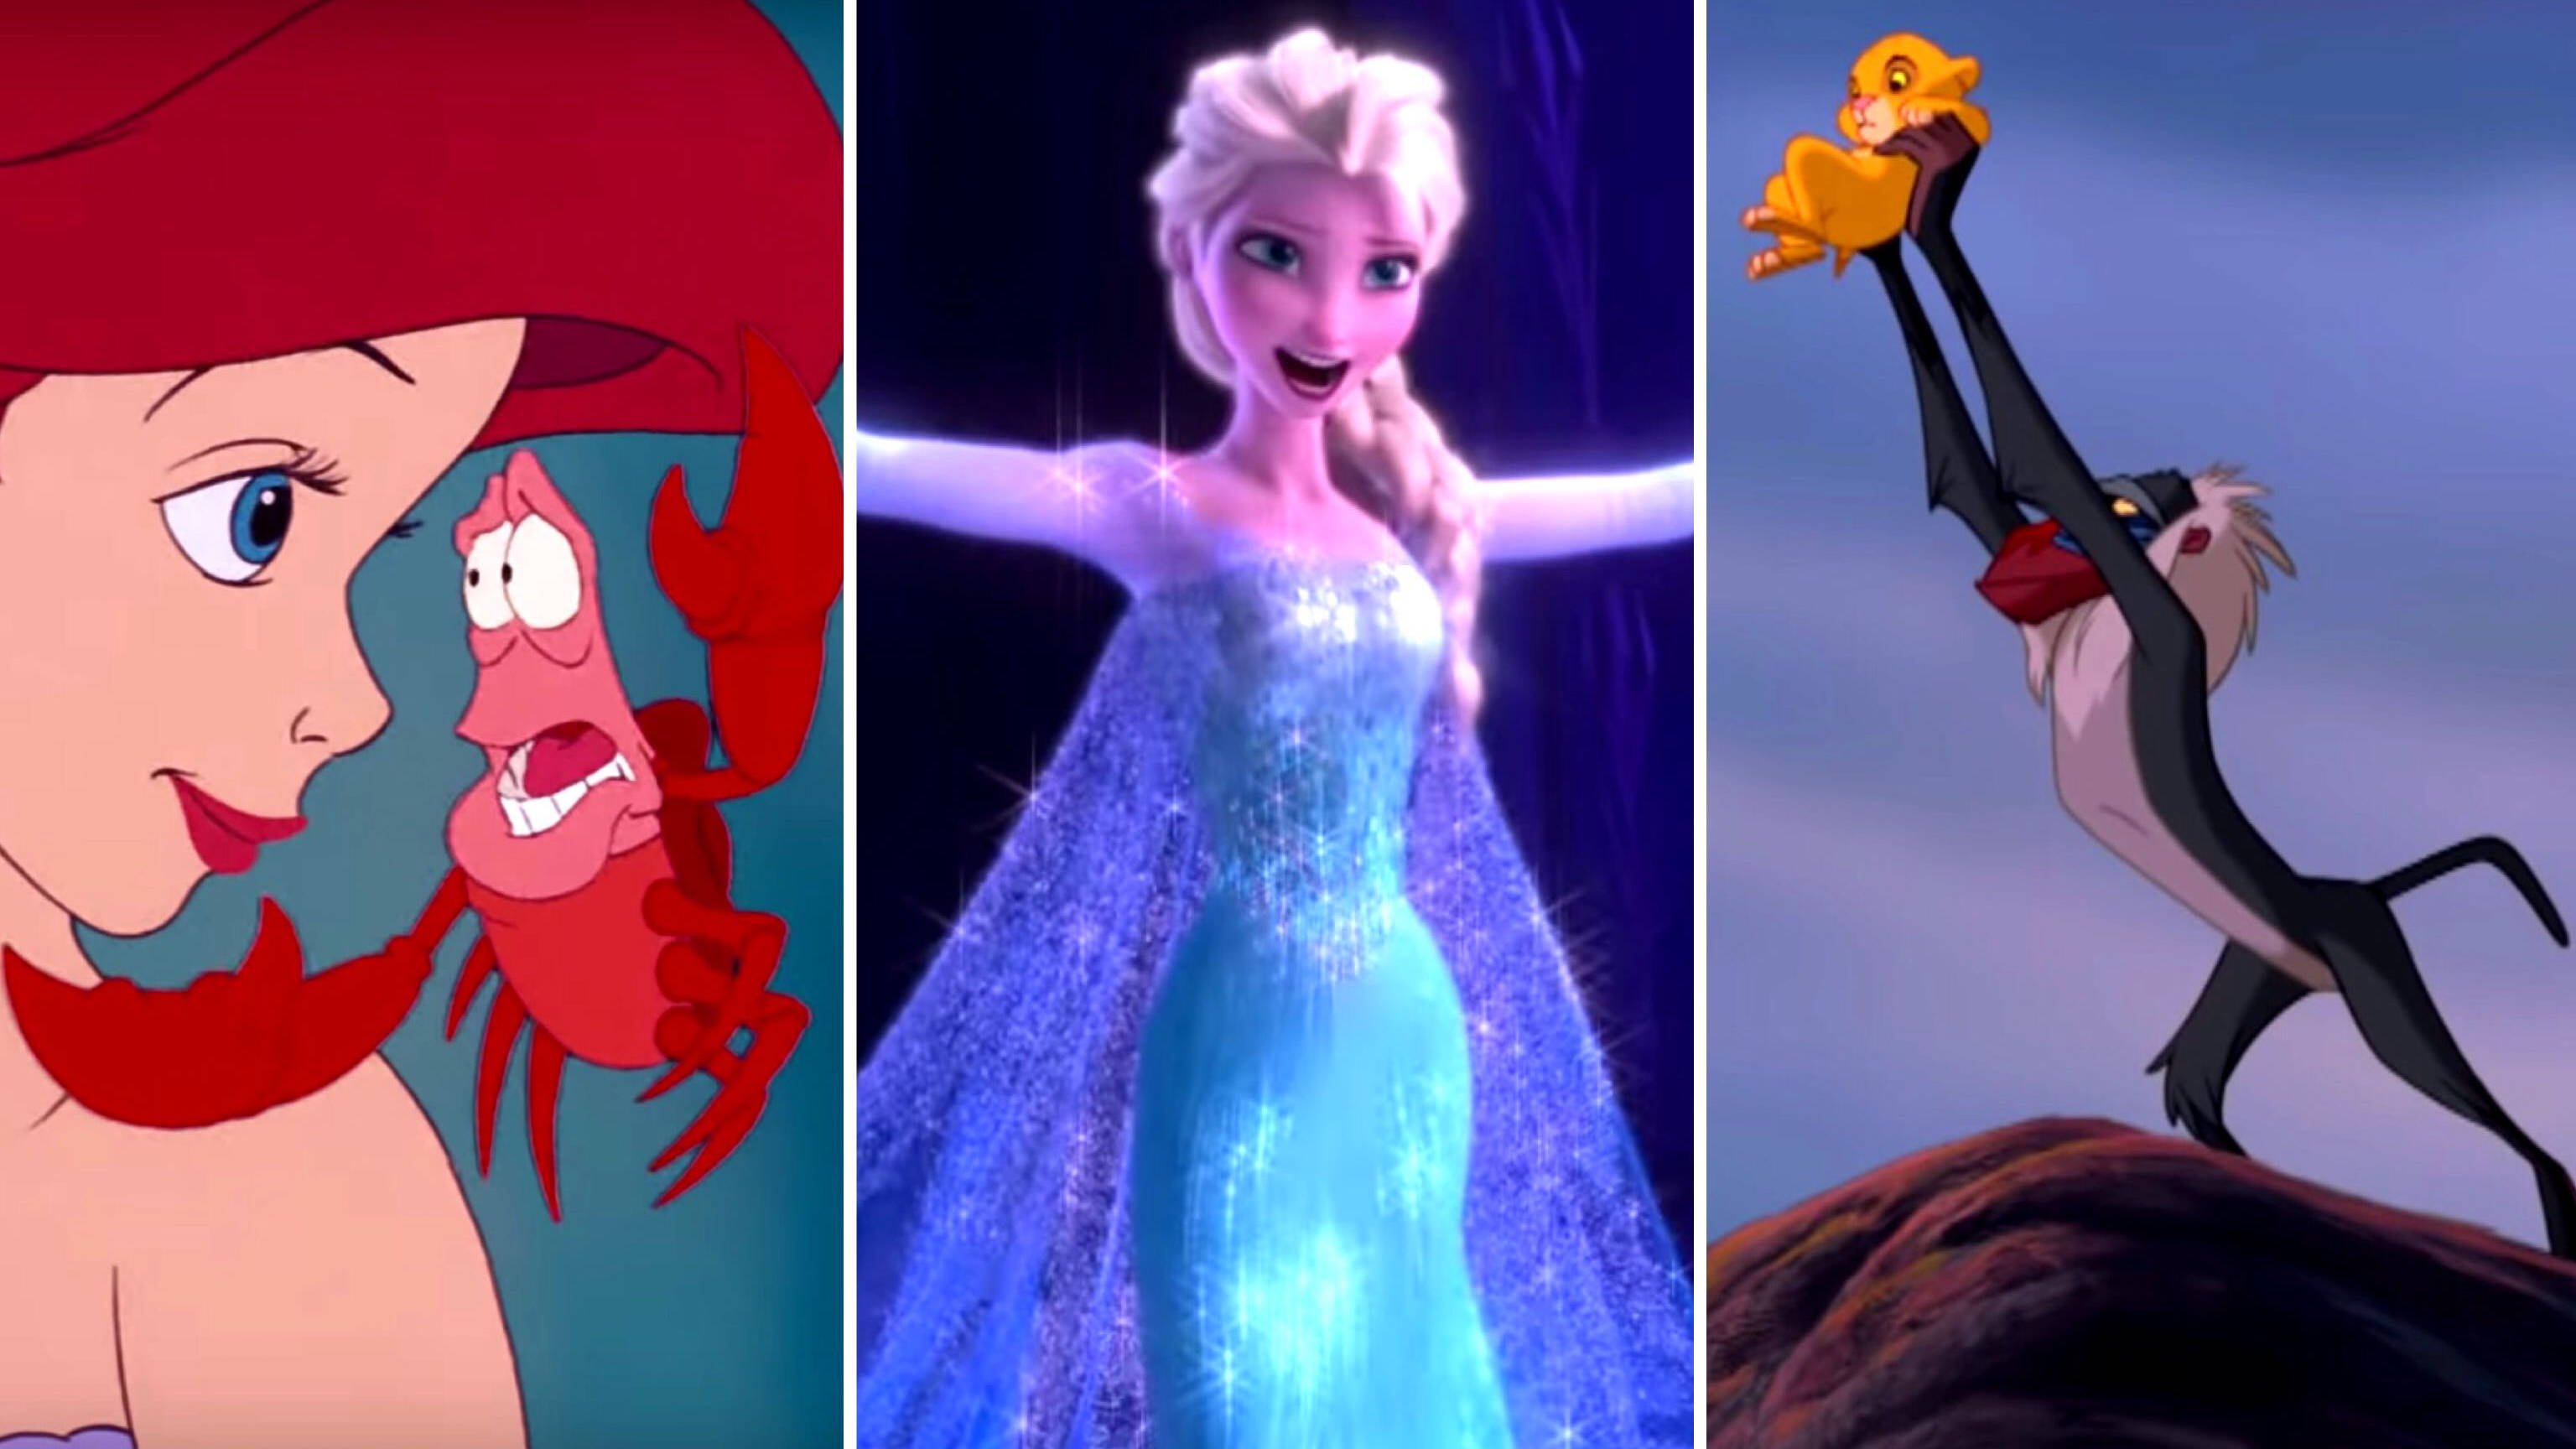 QUIZ: Can you name these iconic Disney songs from just one picture?